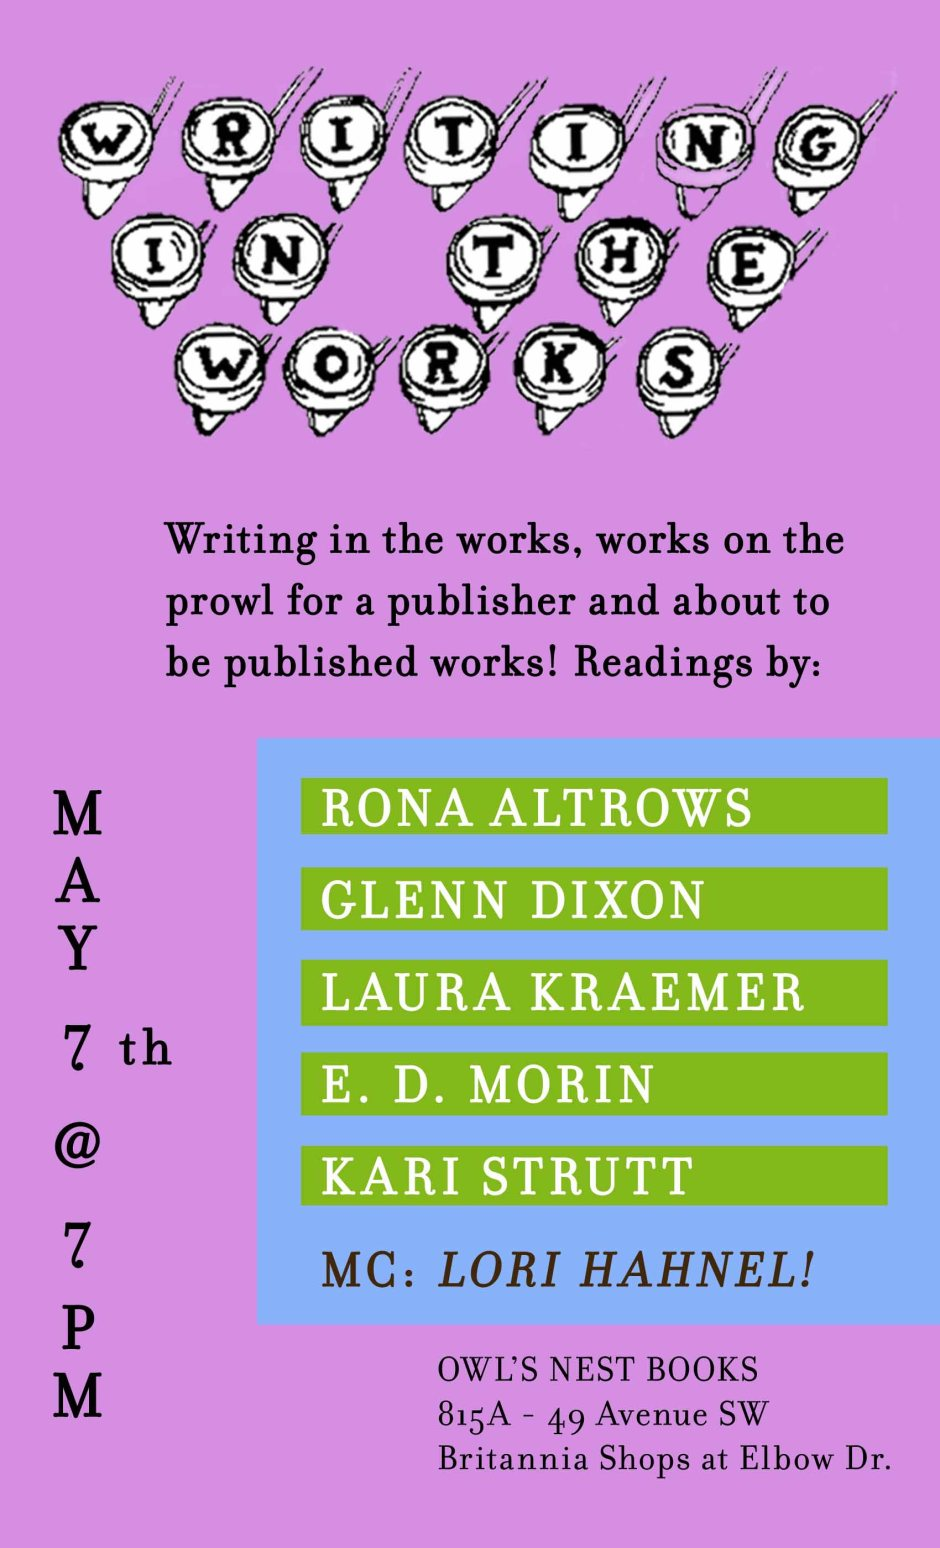 Upcoming: Writing in the Works 2014